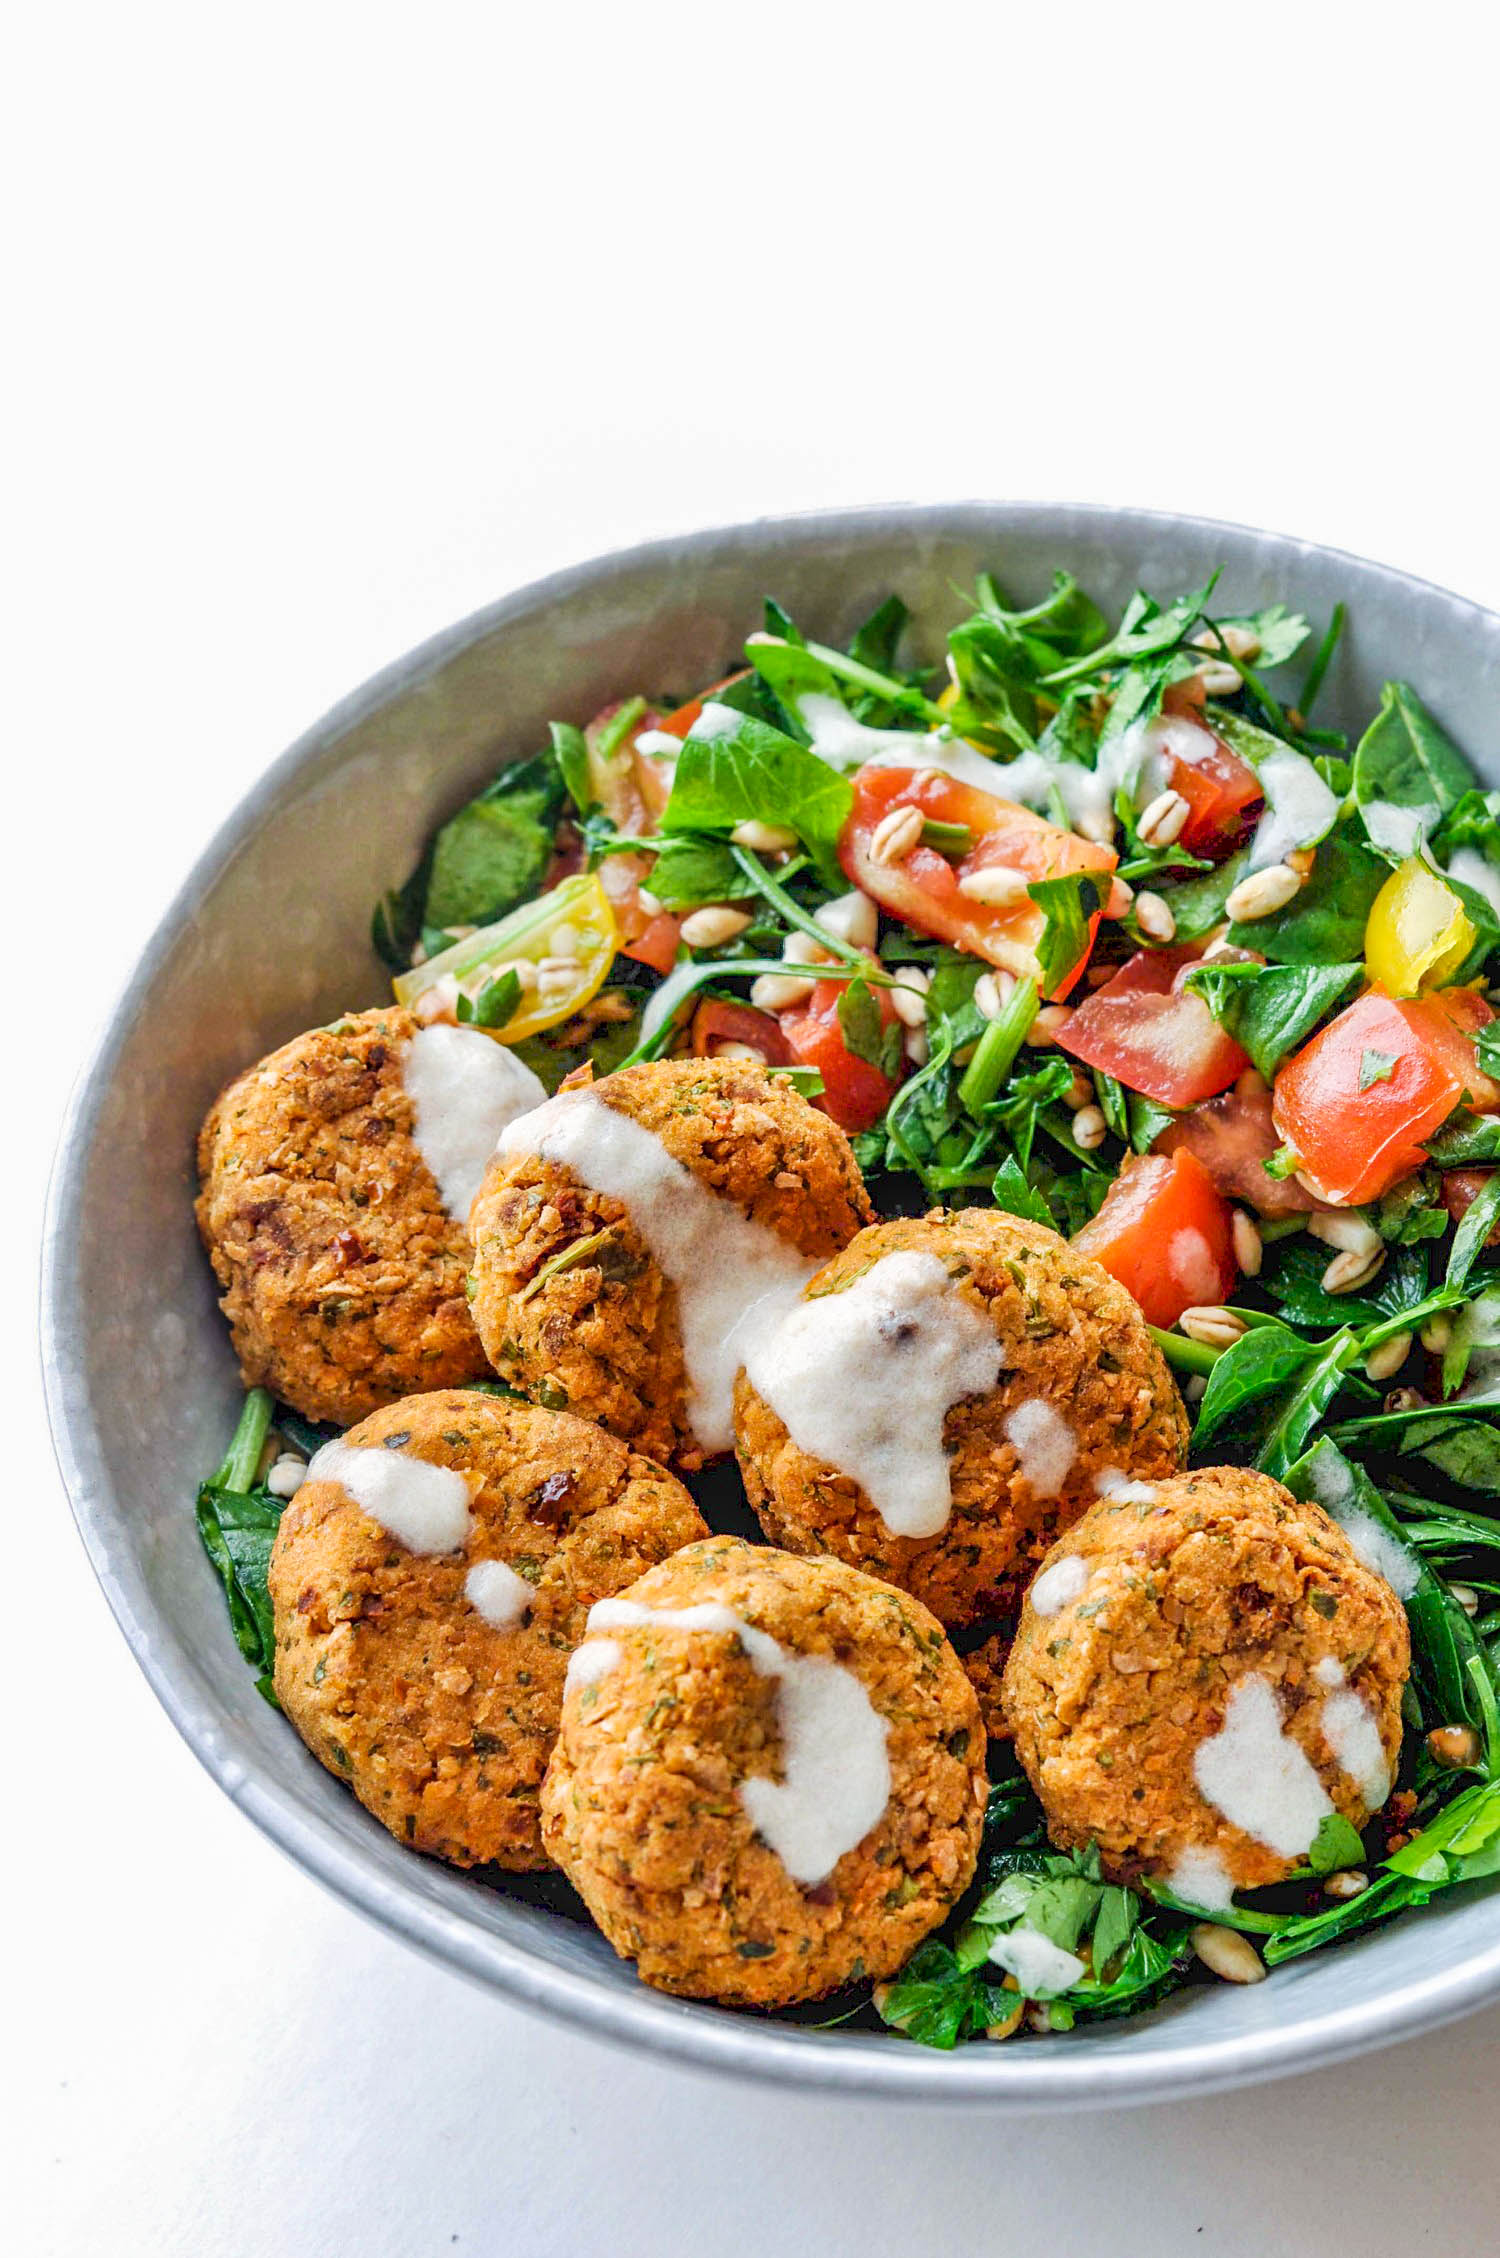 Baked sun-dried tomato falafels with a bulgur salad and tahini dressing. A healthy, vegan recipe.